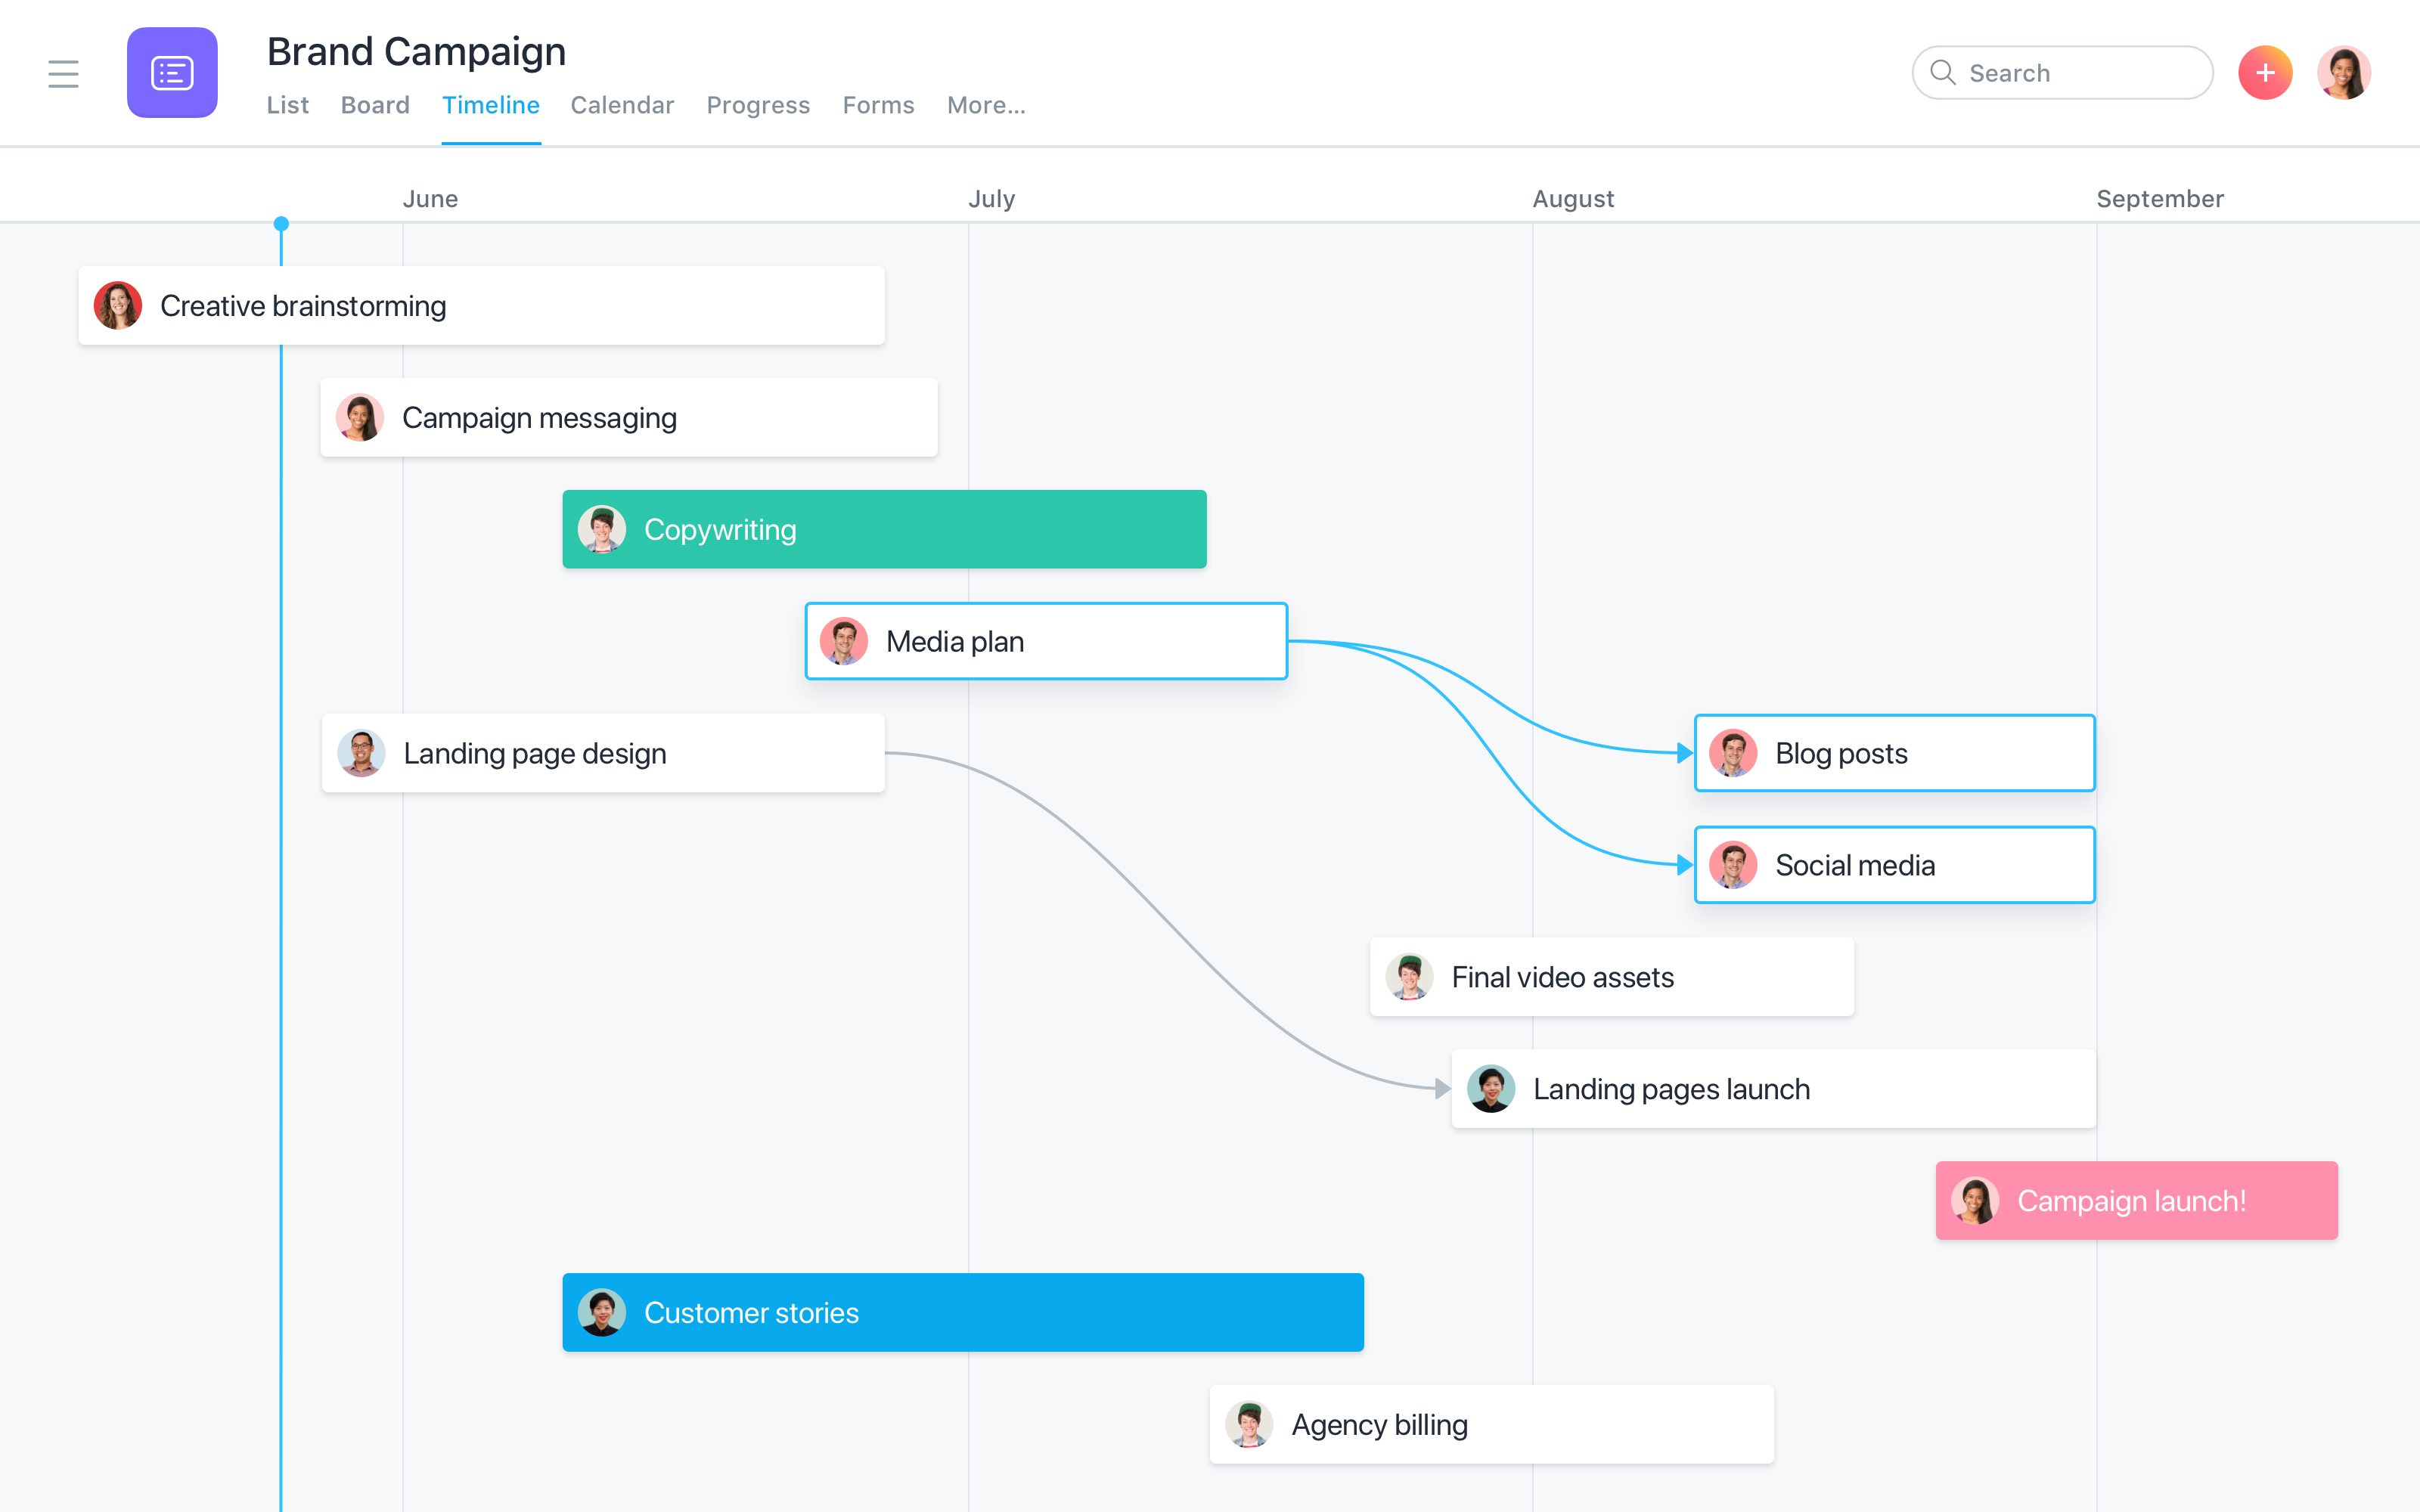 Timeline shows you how each piece of your project fits together so you can start projects on the right foot and hit your deadlines.